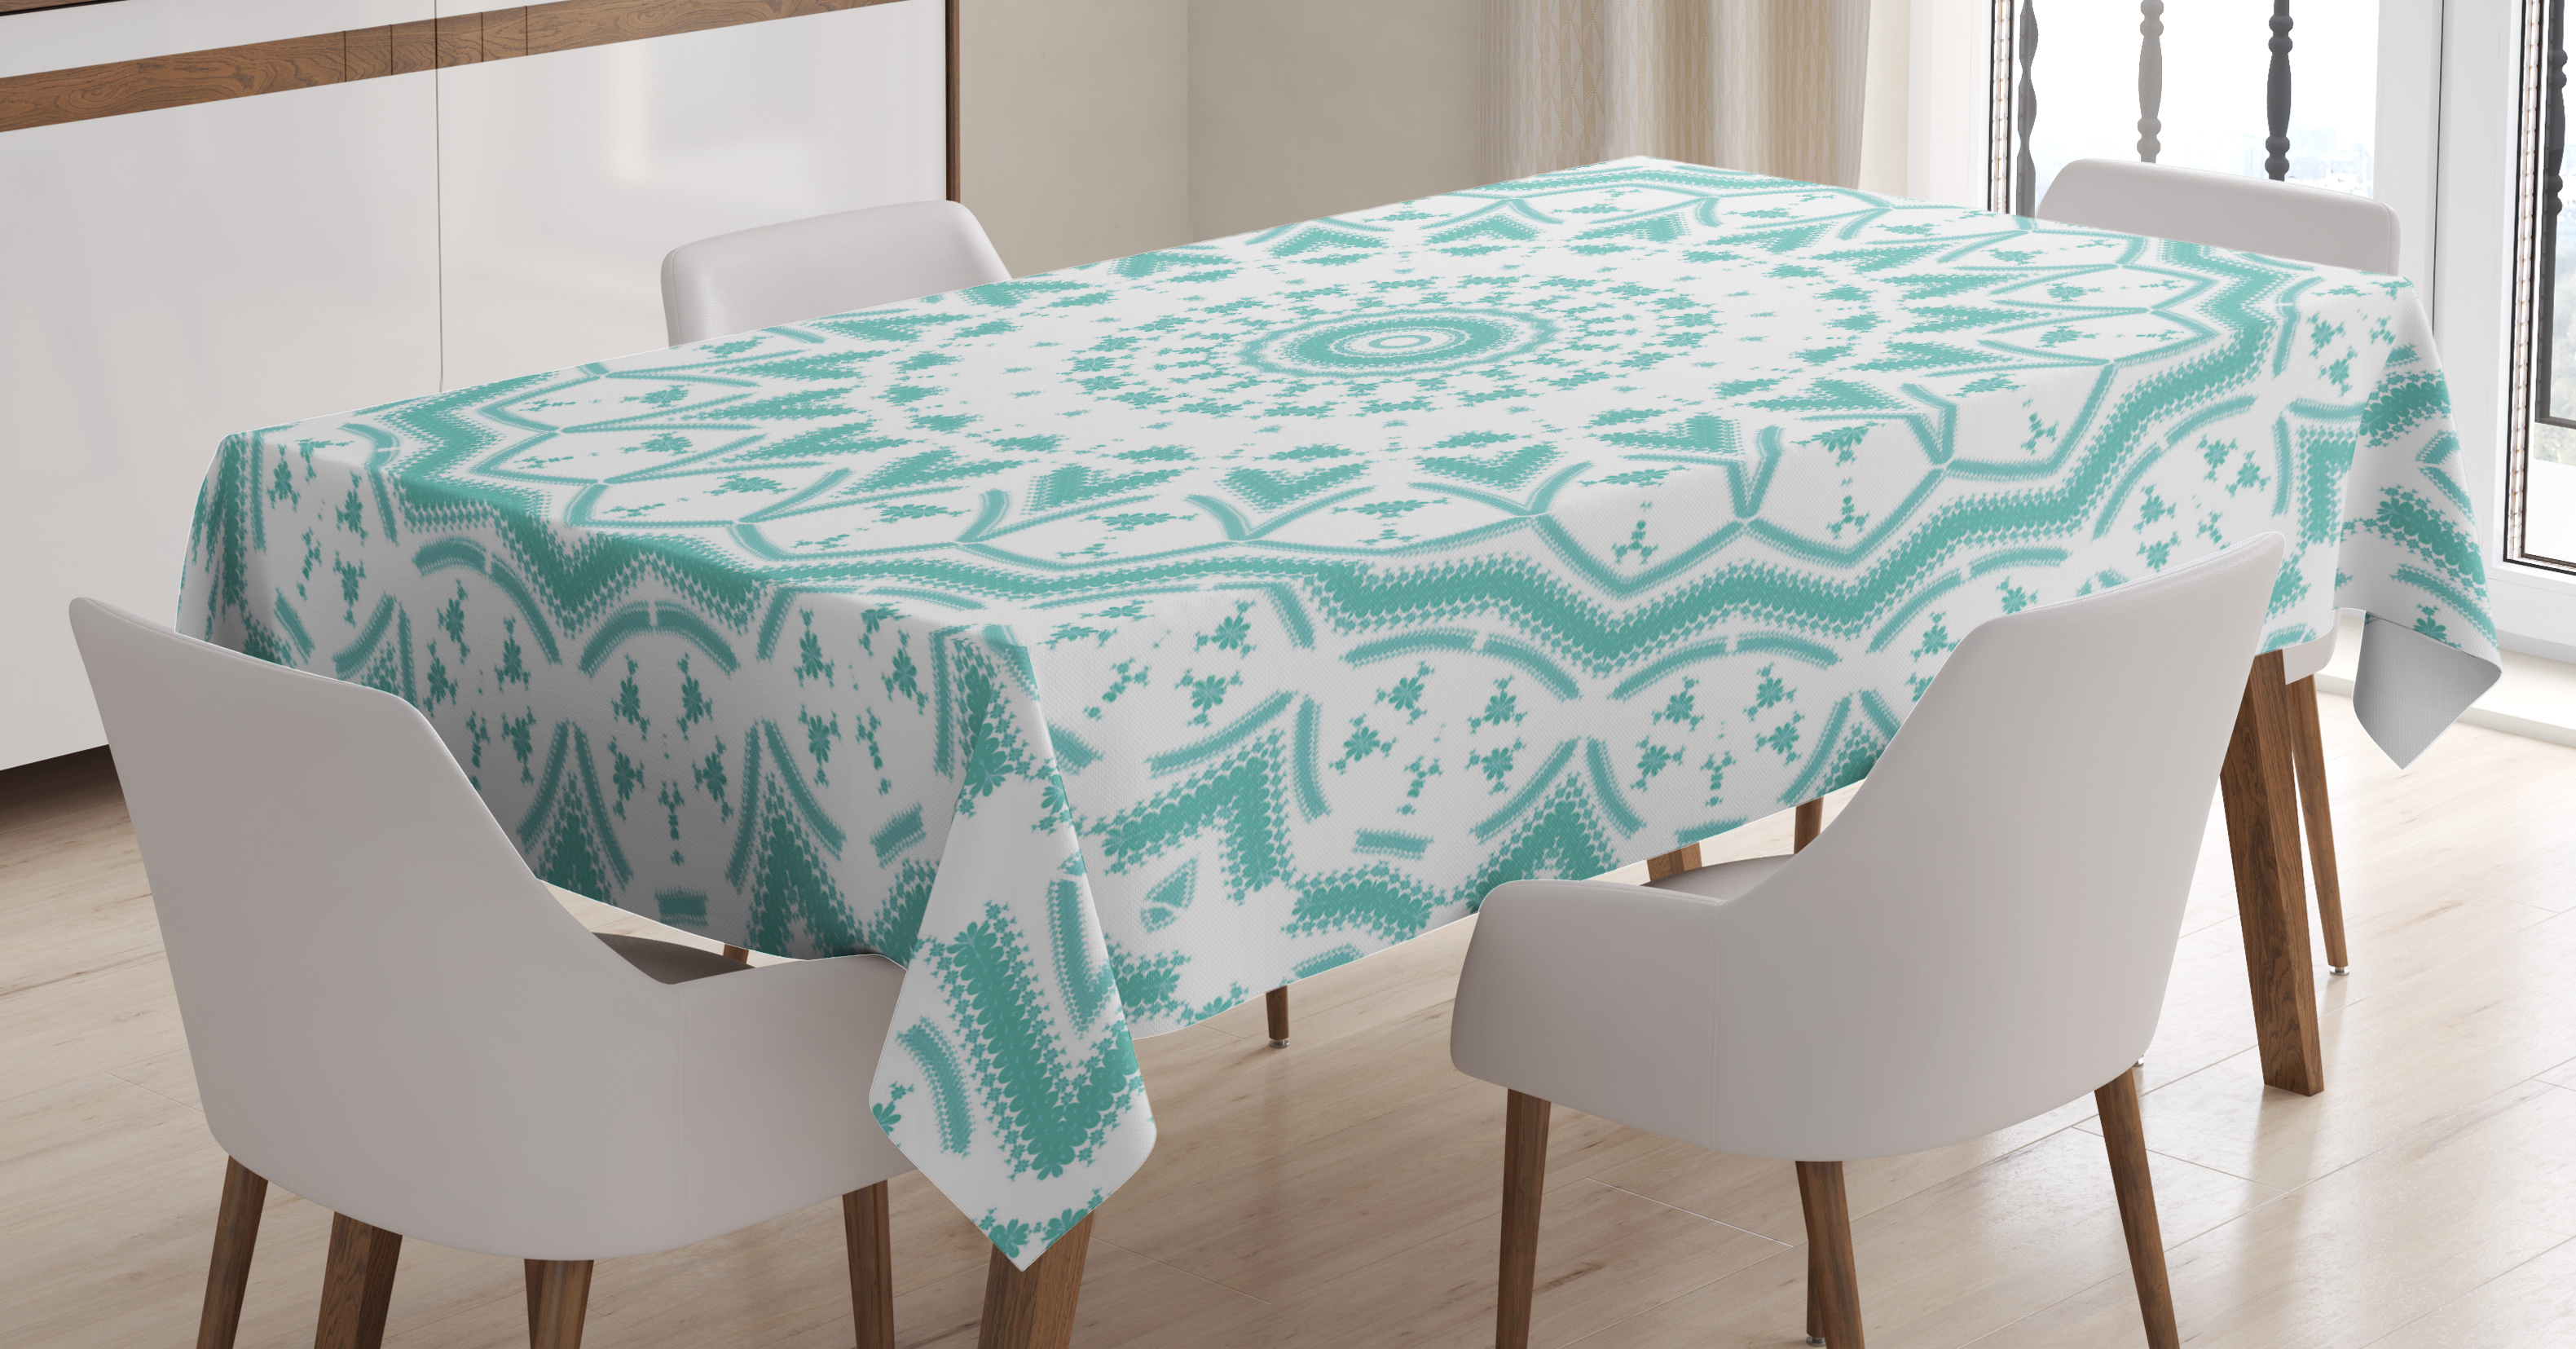 Aqua Tablecloth, Mandala Indian Ethnic Decor Tie Dye Floral Leaves Seem  Design Image Print,